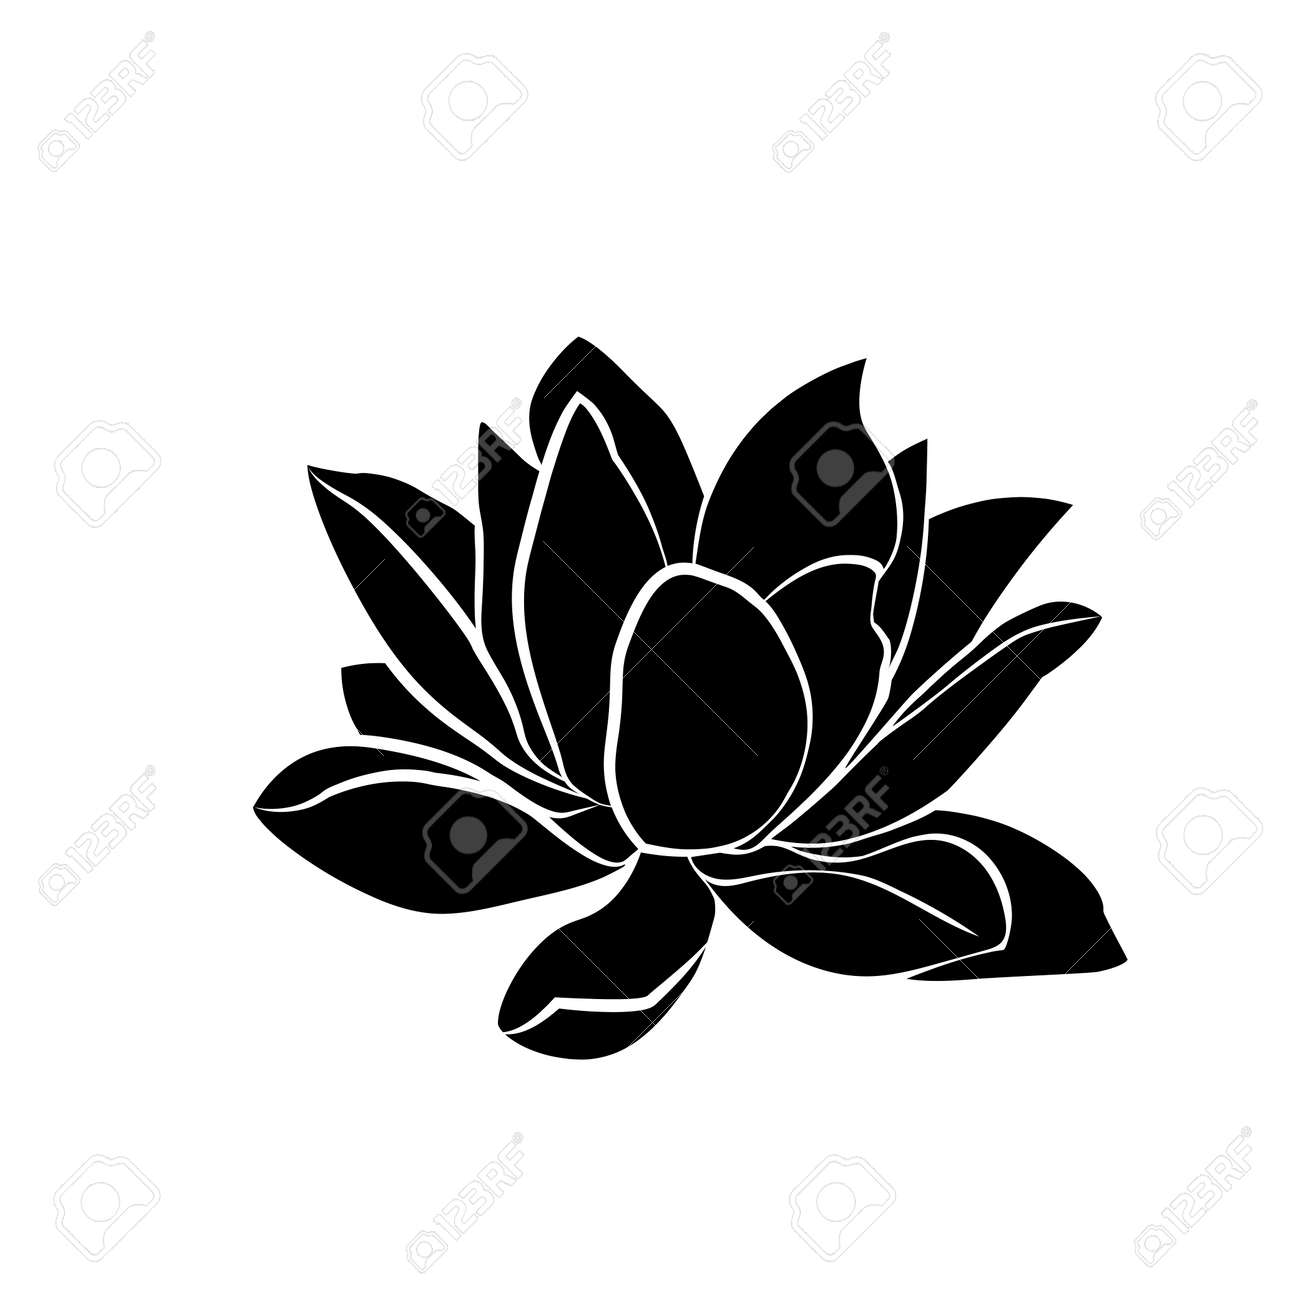 Black Silhouette Of Lotus Flowers Icon On A White Background Royalty